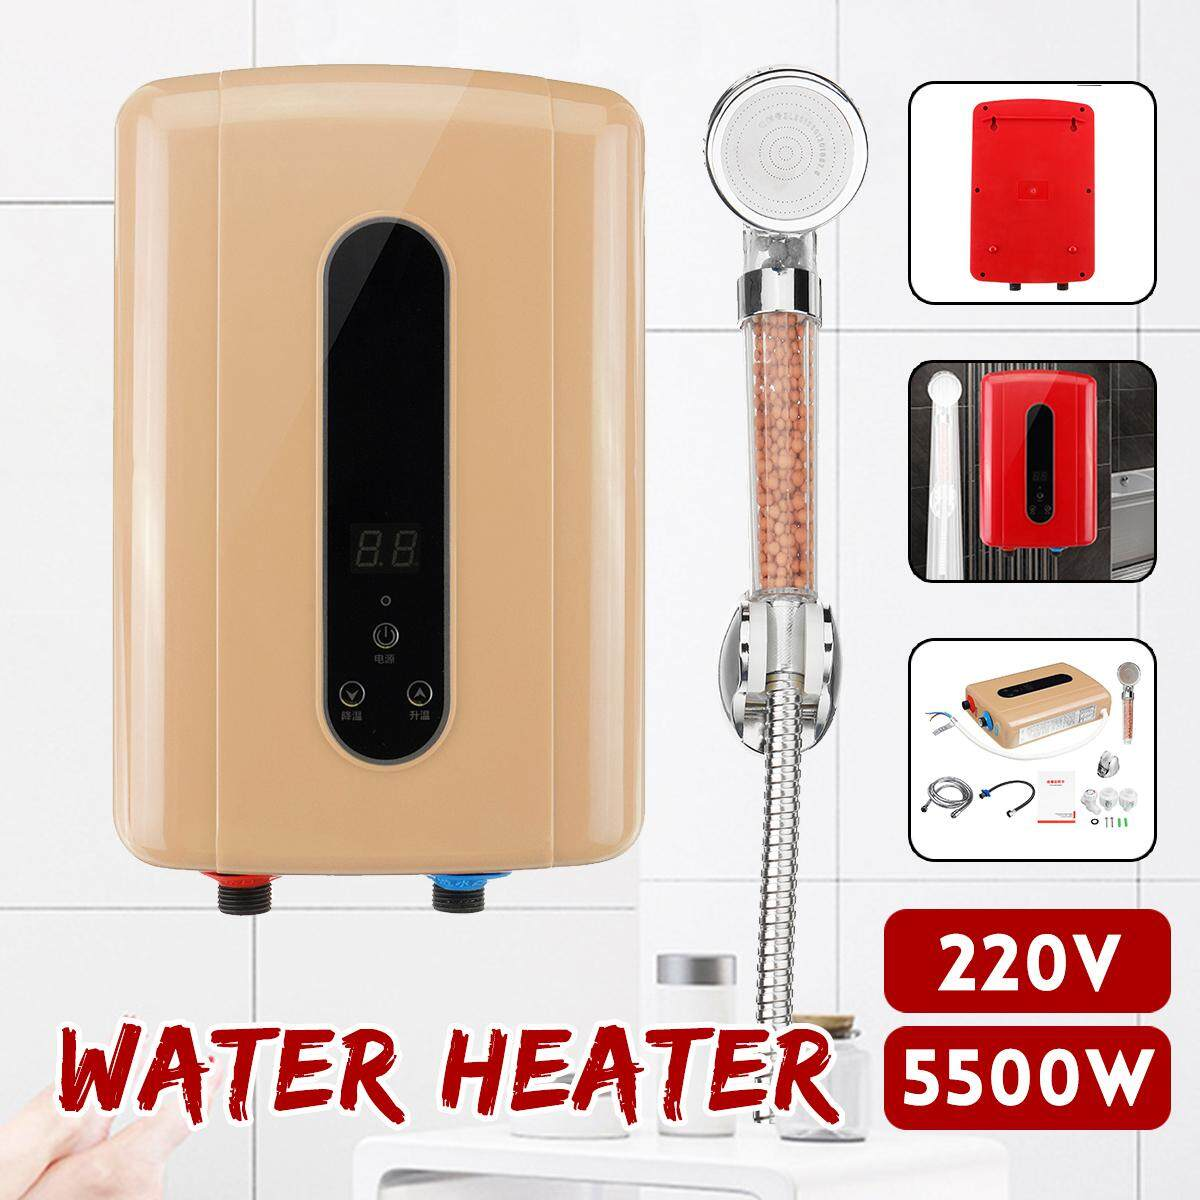 5500W 220V Electric Tankless Hot Water Instant Heater Bathroom Kitchen Shower